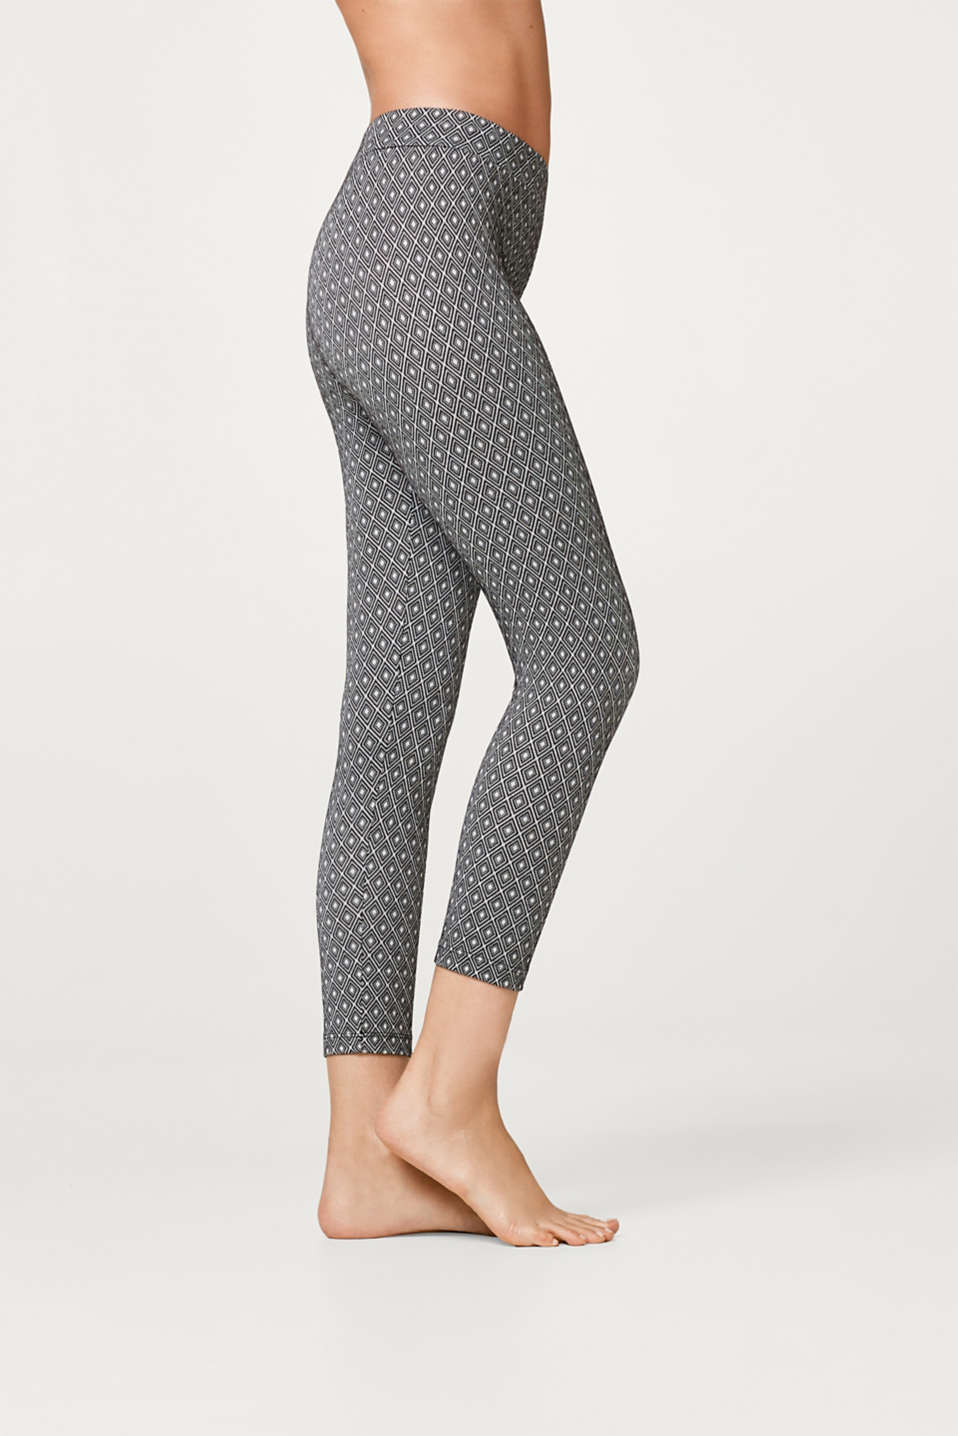 Esprit - 7/ 8 leggings with jacquard pattern